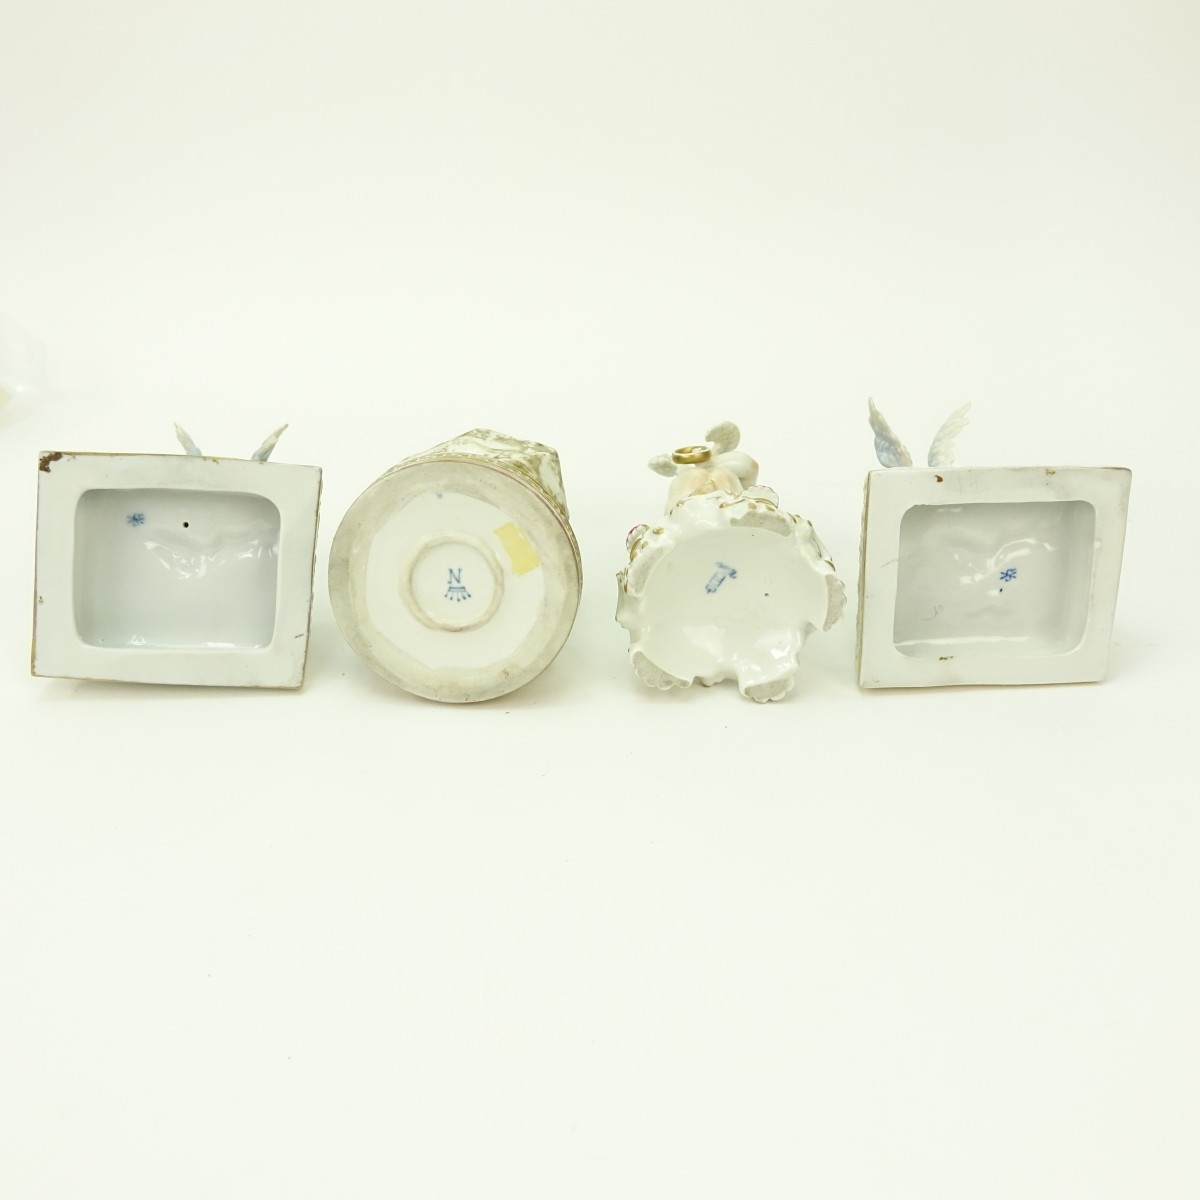 Grouping of Four (4) Antique Porcelain Figurines